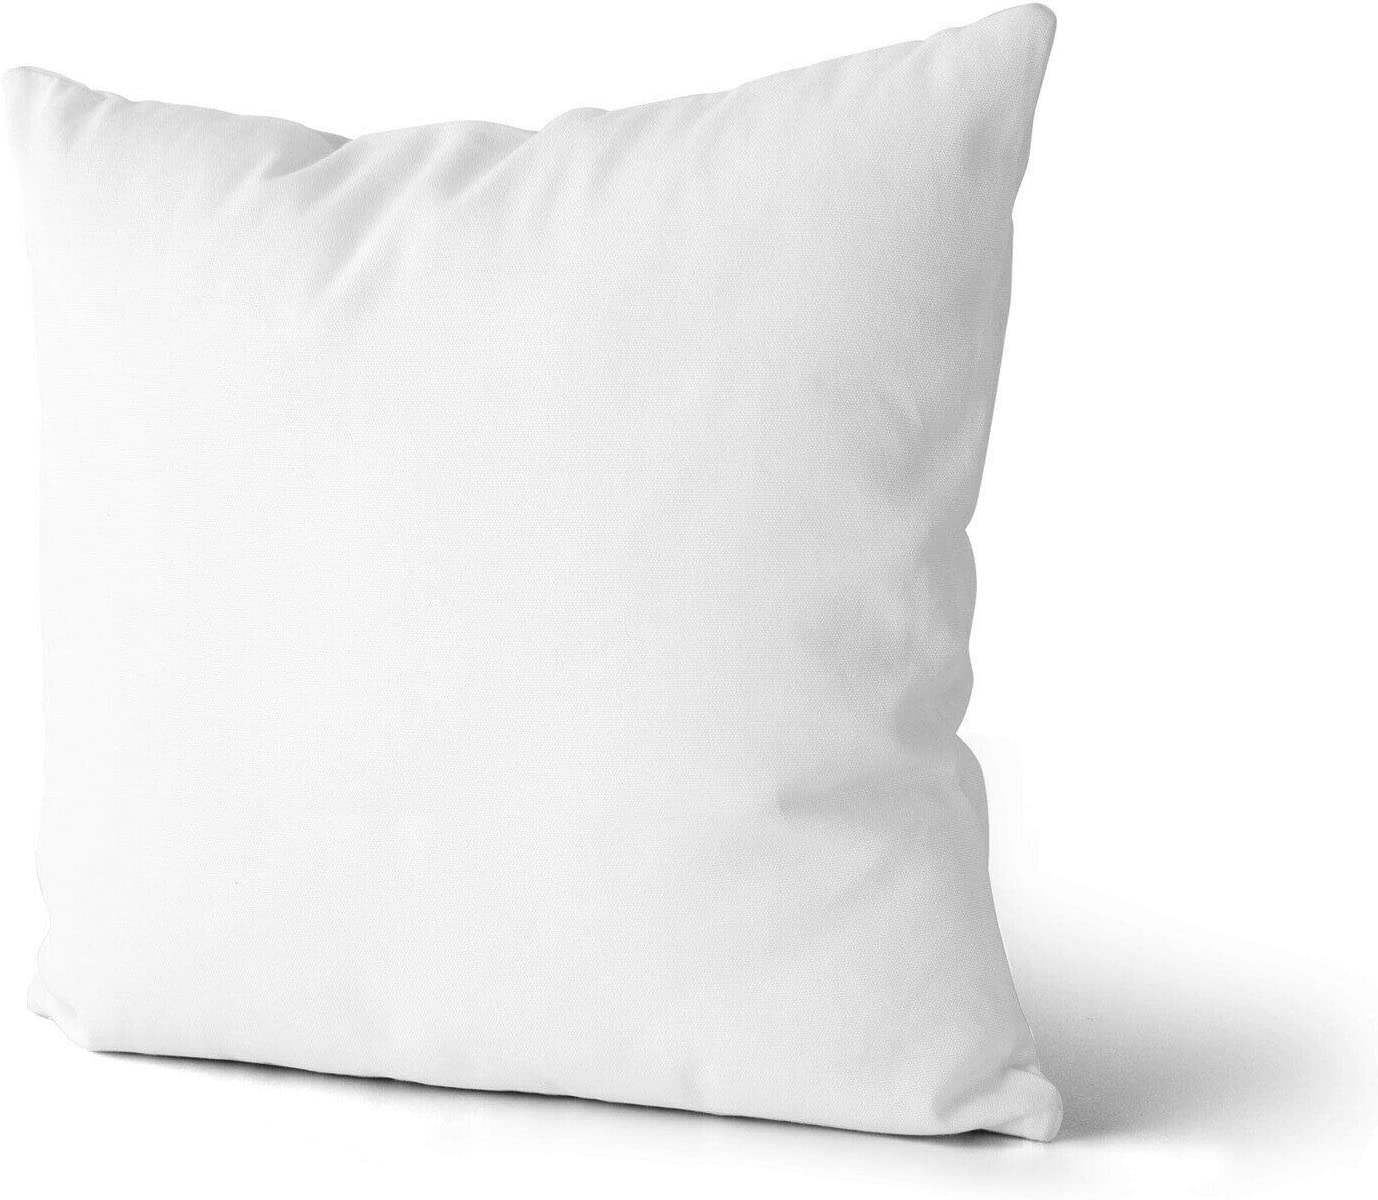 Extra Fill Plump Polyester Hollowfibre Super Soft Cushions Pads Inners Fillers Scatters 16x16 Pack of 1